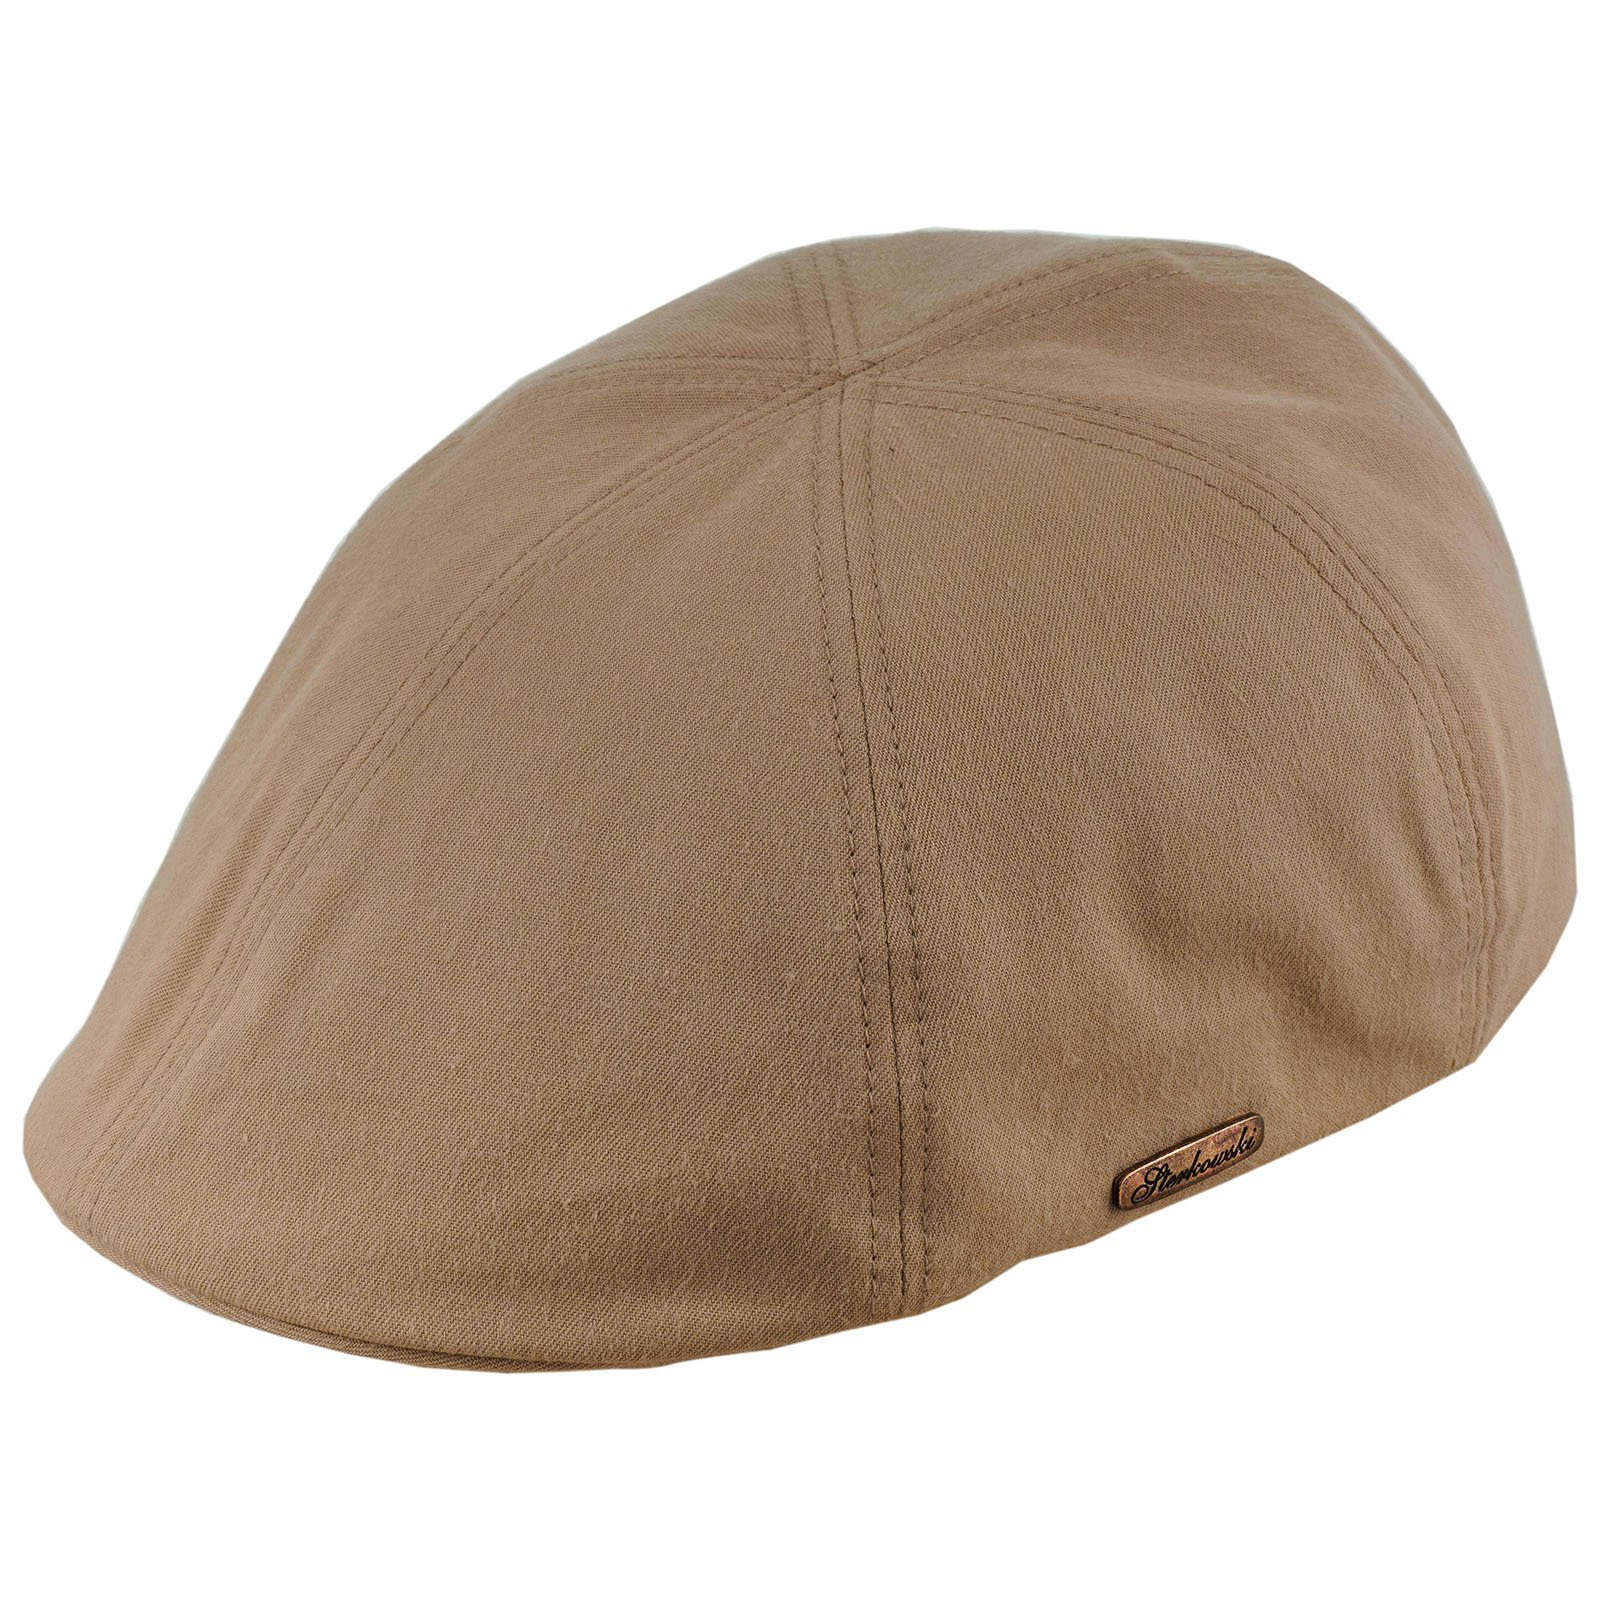 Sterkowski Light Breathable Emerizing Cotton 6 Panel Duckbill Flat Cap, Beige - 58cm = L = US 7 1/4 by Sterkowski (Image #3)